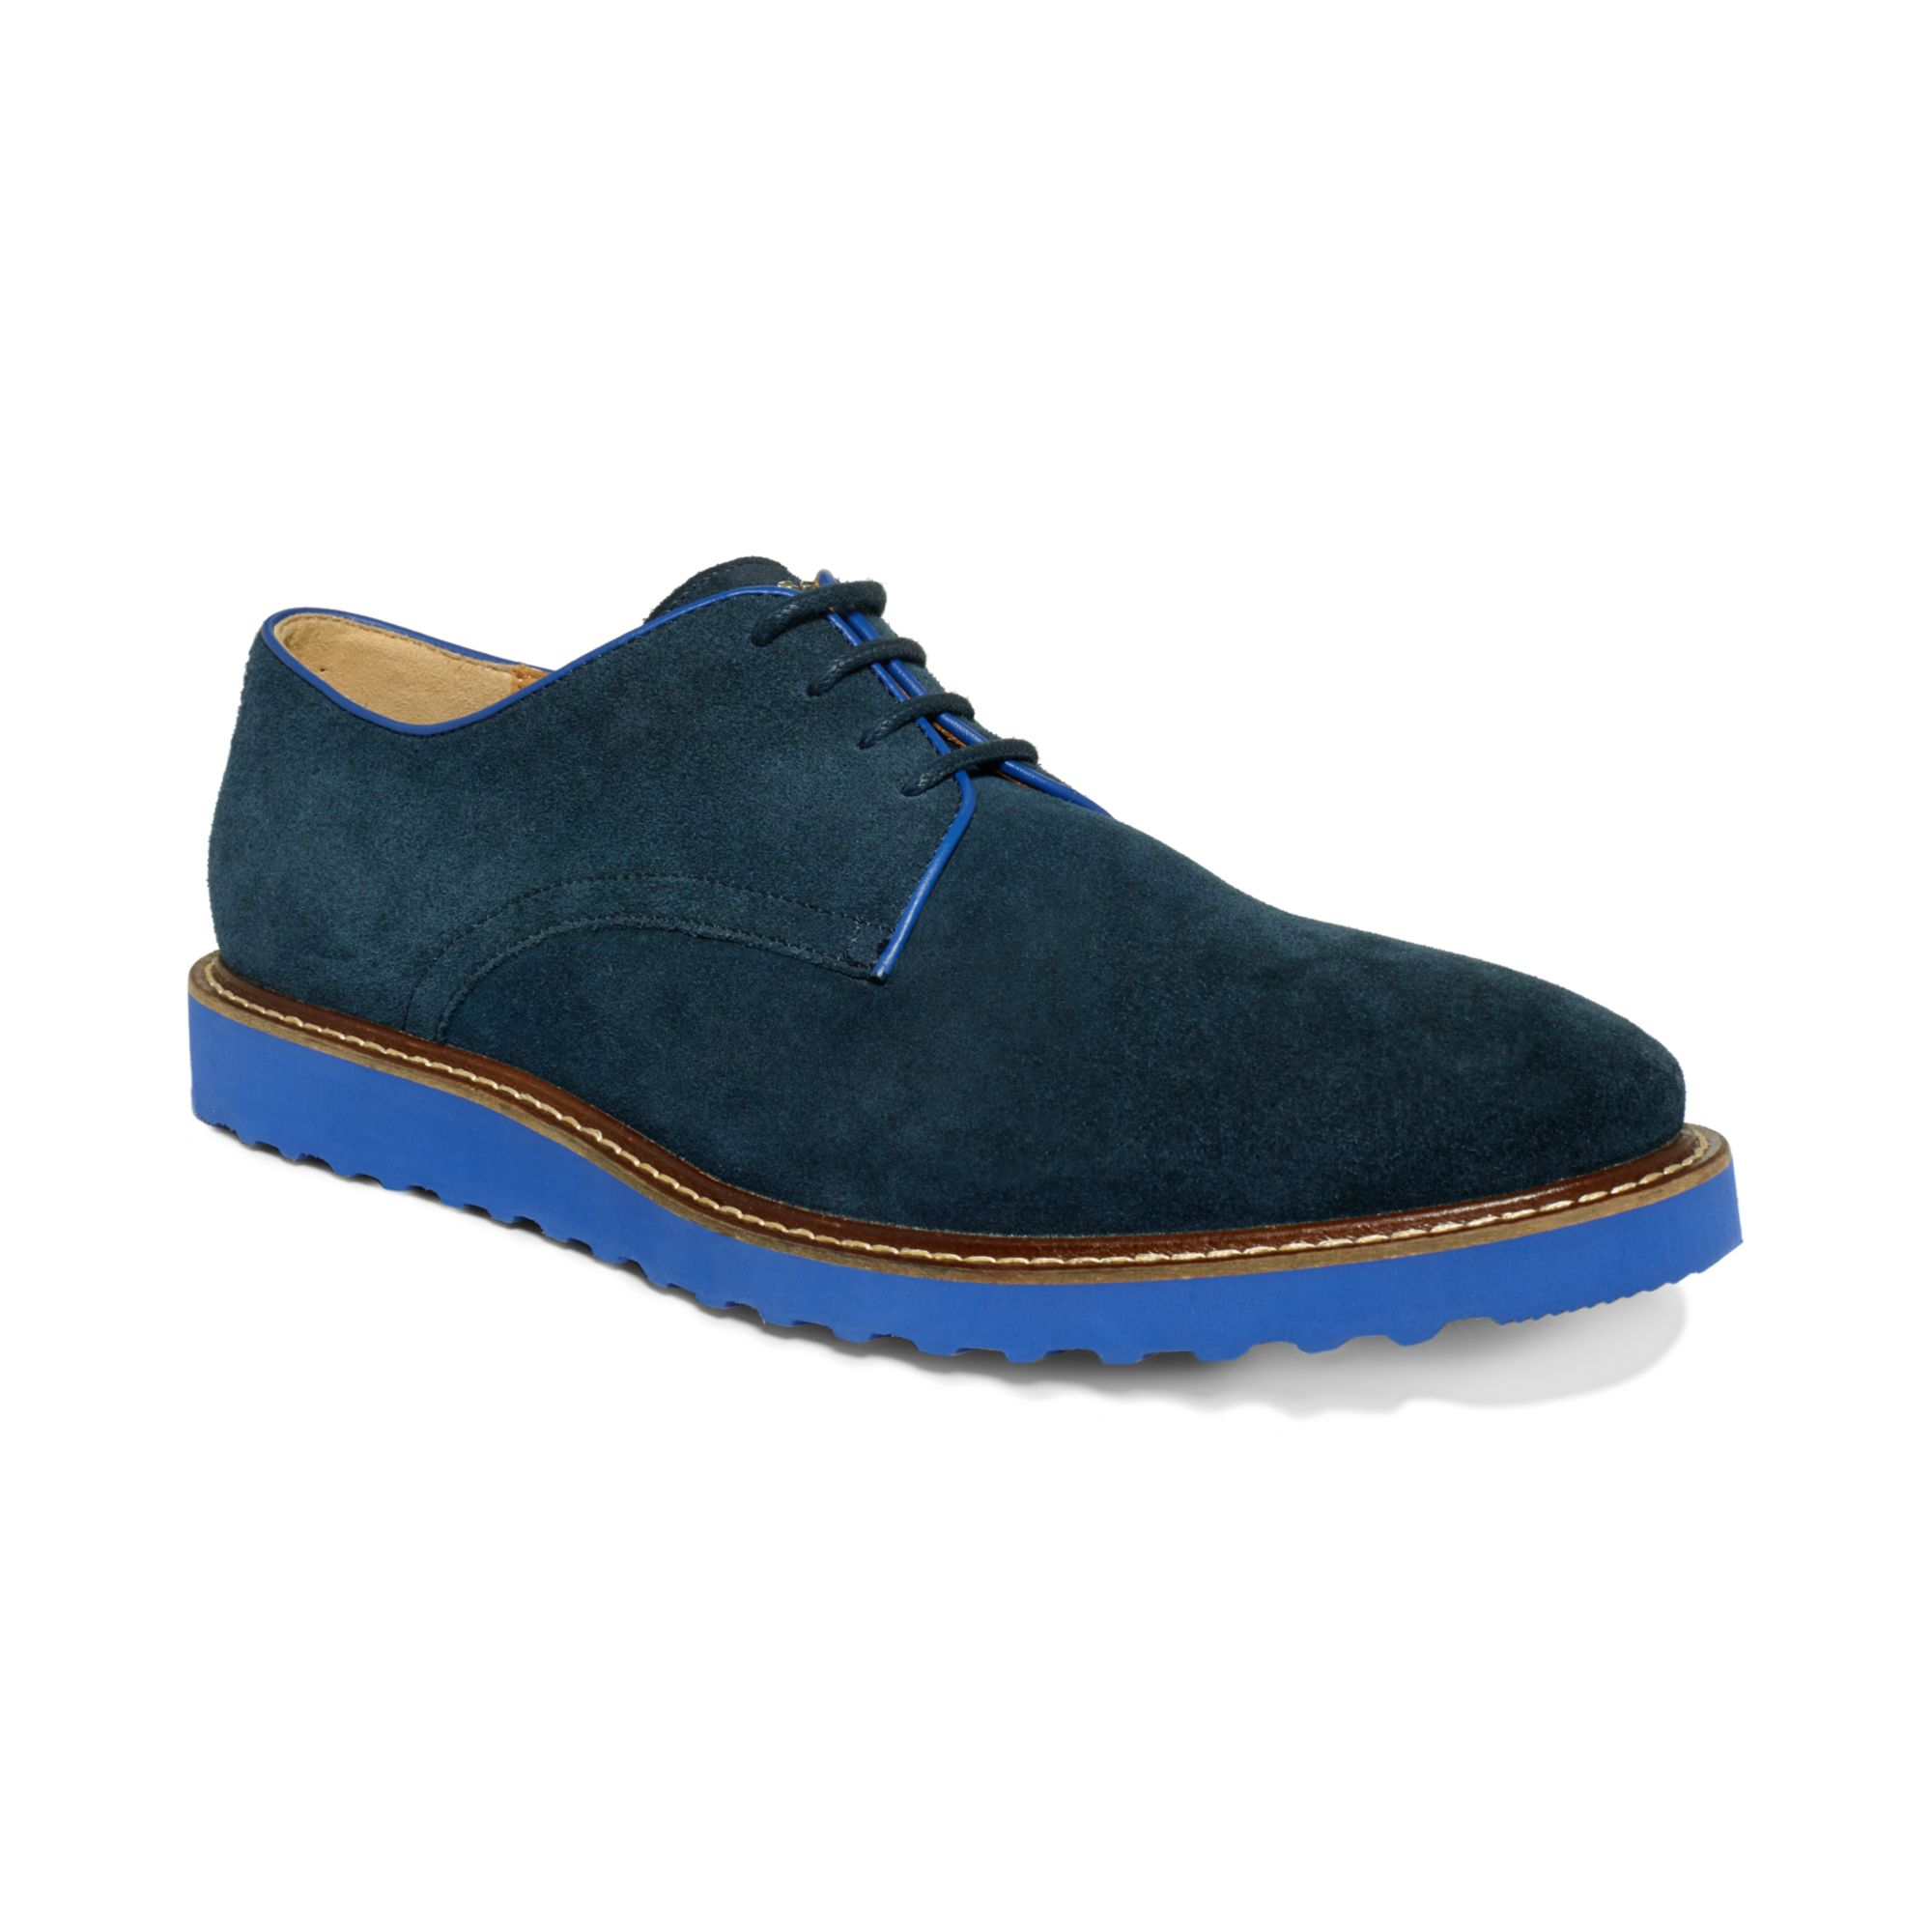 Suede Leather Oxfords Shoes